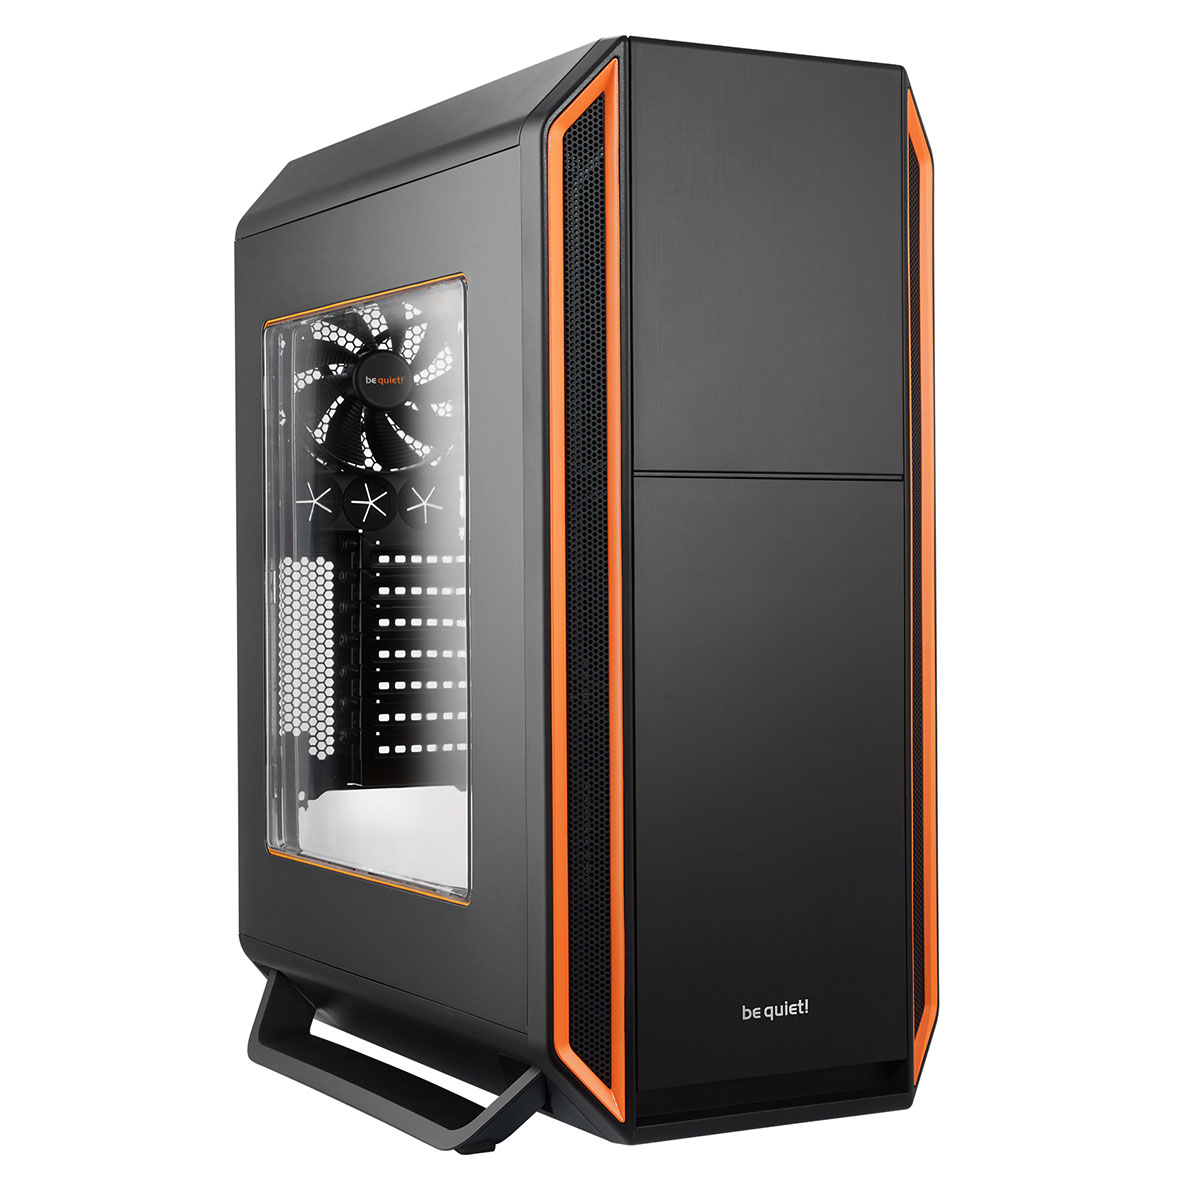 be quiet silent base 800 window noir orange bo tier pc be quiet sur. Black Bedroom Furniture Sets. Home Design Ideas